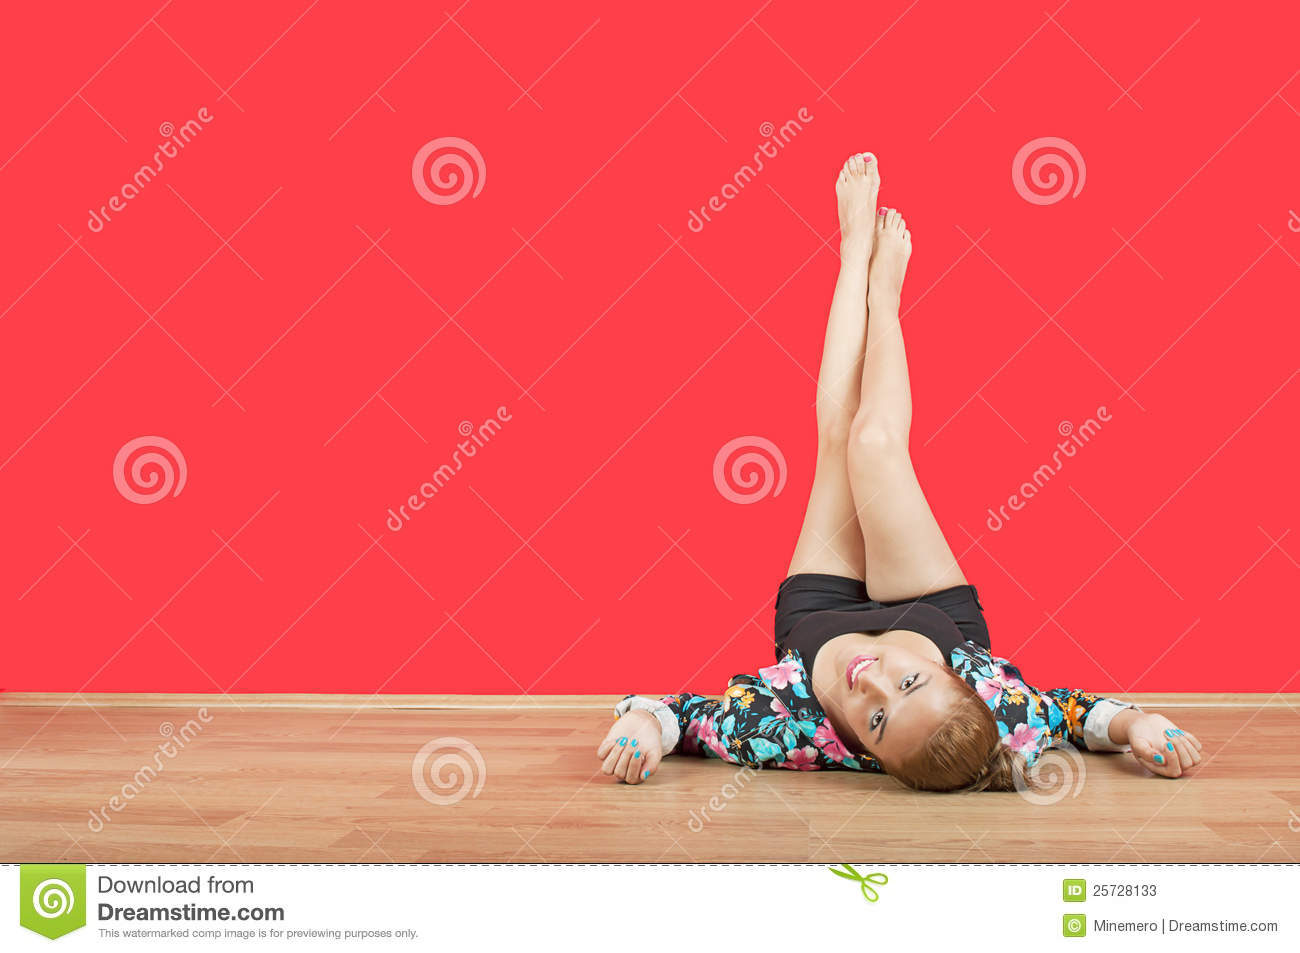 Young girl with legs up